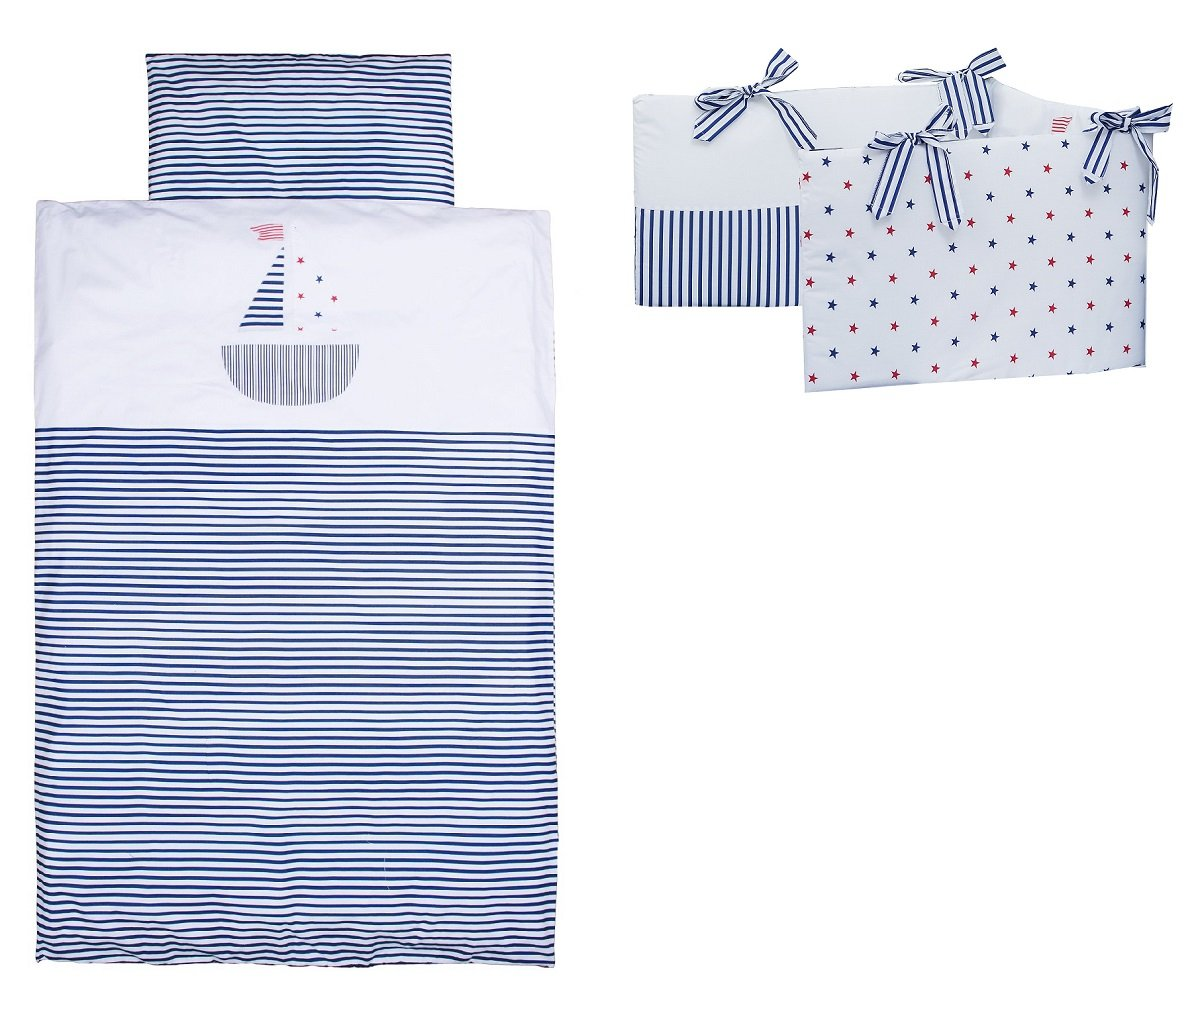 Vizaro - Cot Bumper, Duvet Cover (100x135cm) and Pillow Case - 3 Pieces Set for Cot Bed 70x140 cm - 100% Luxury Cotton - Made exclusively in the European Union, fabrics successfully tested for harmful substances - Collection Little Sailing Boat